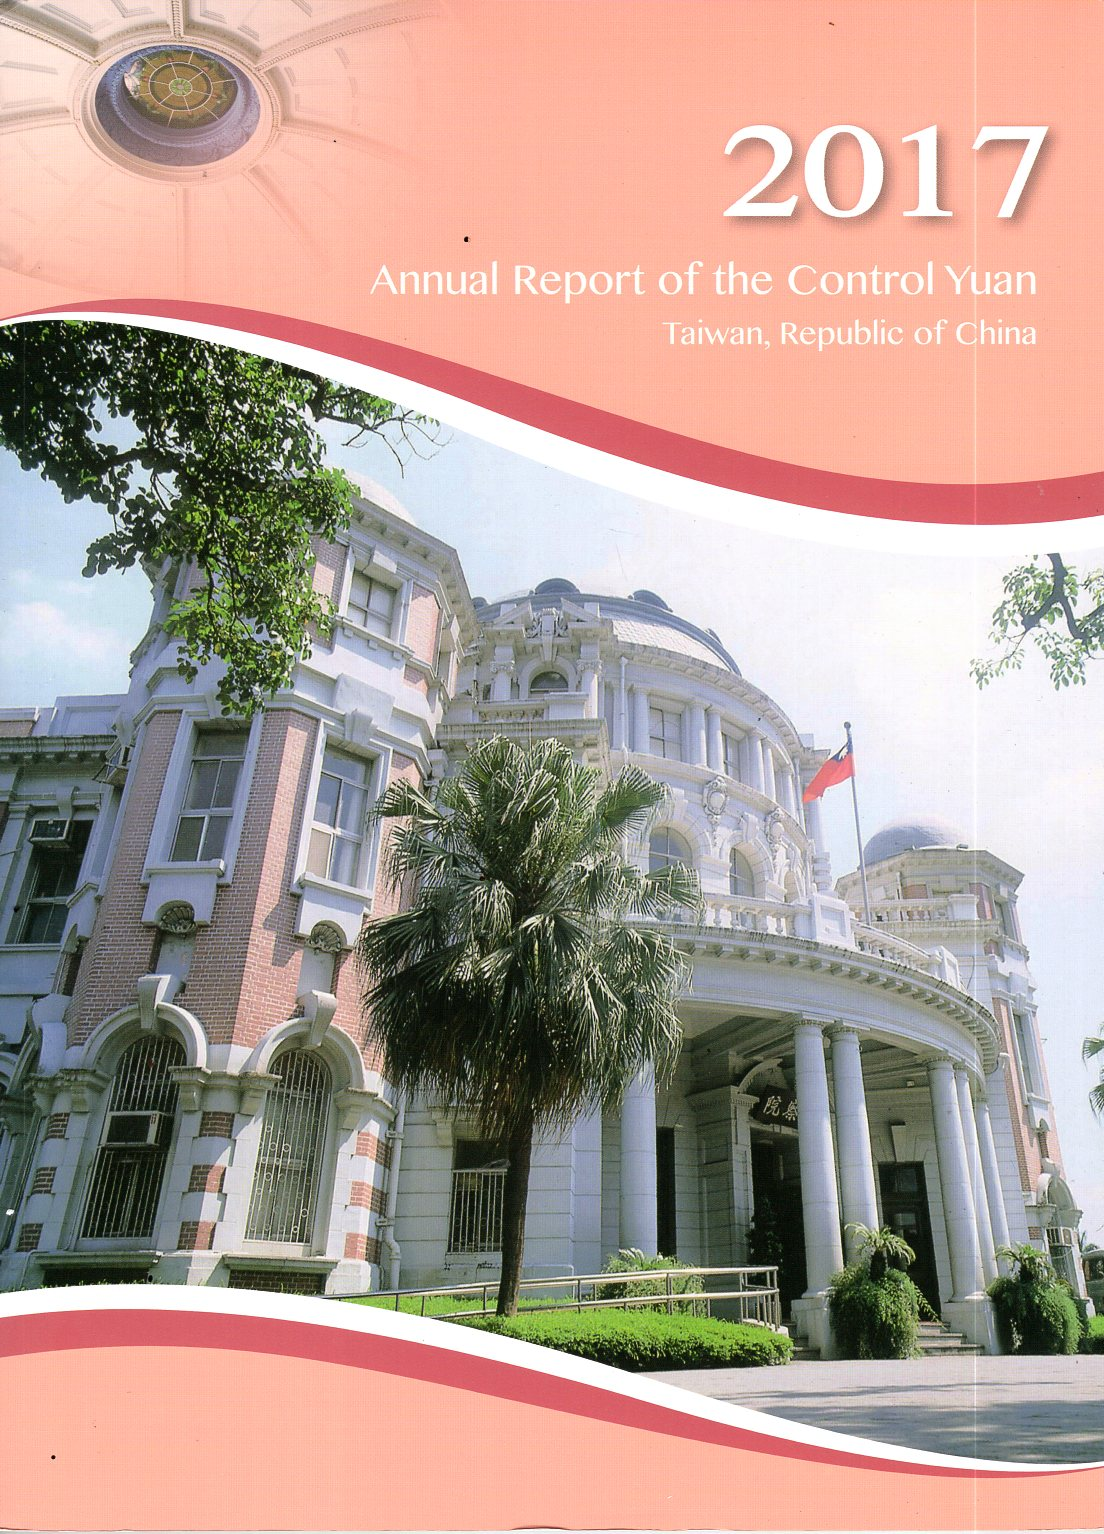 Annual Report of the Control Yuan, 2017